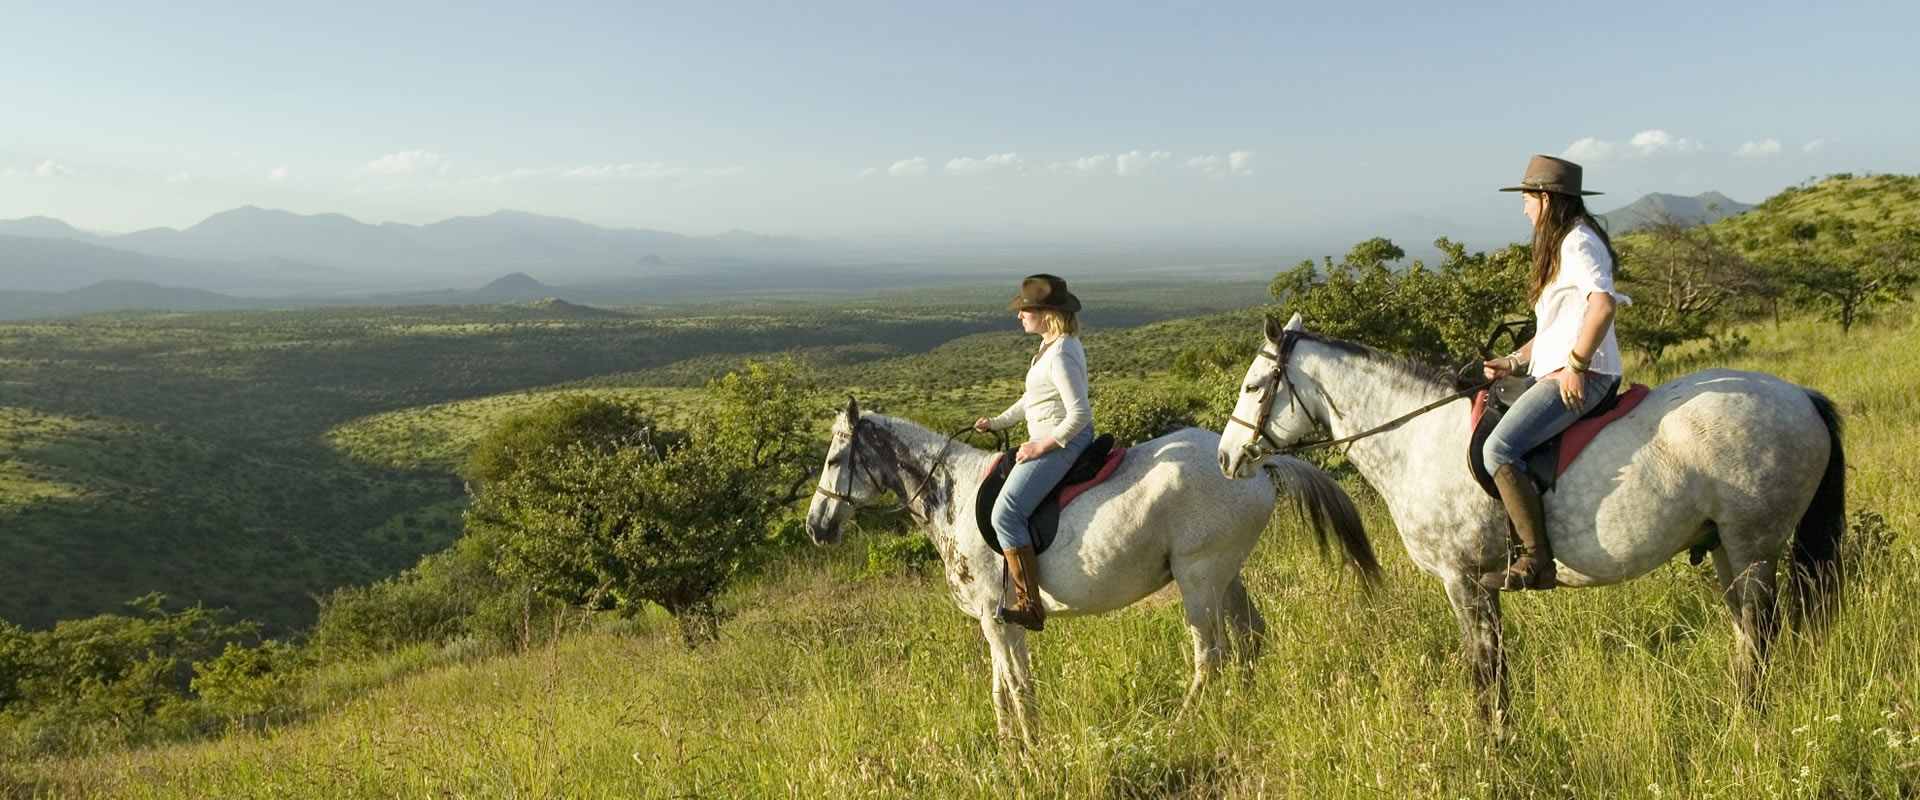 8 nights horse rides in the wild